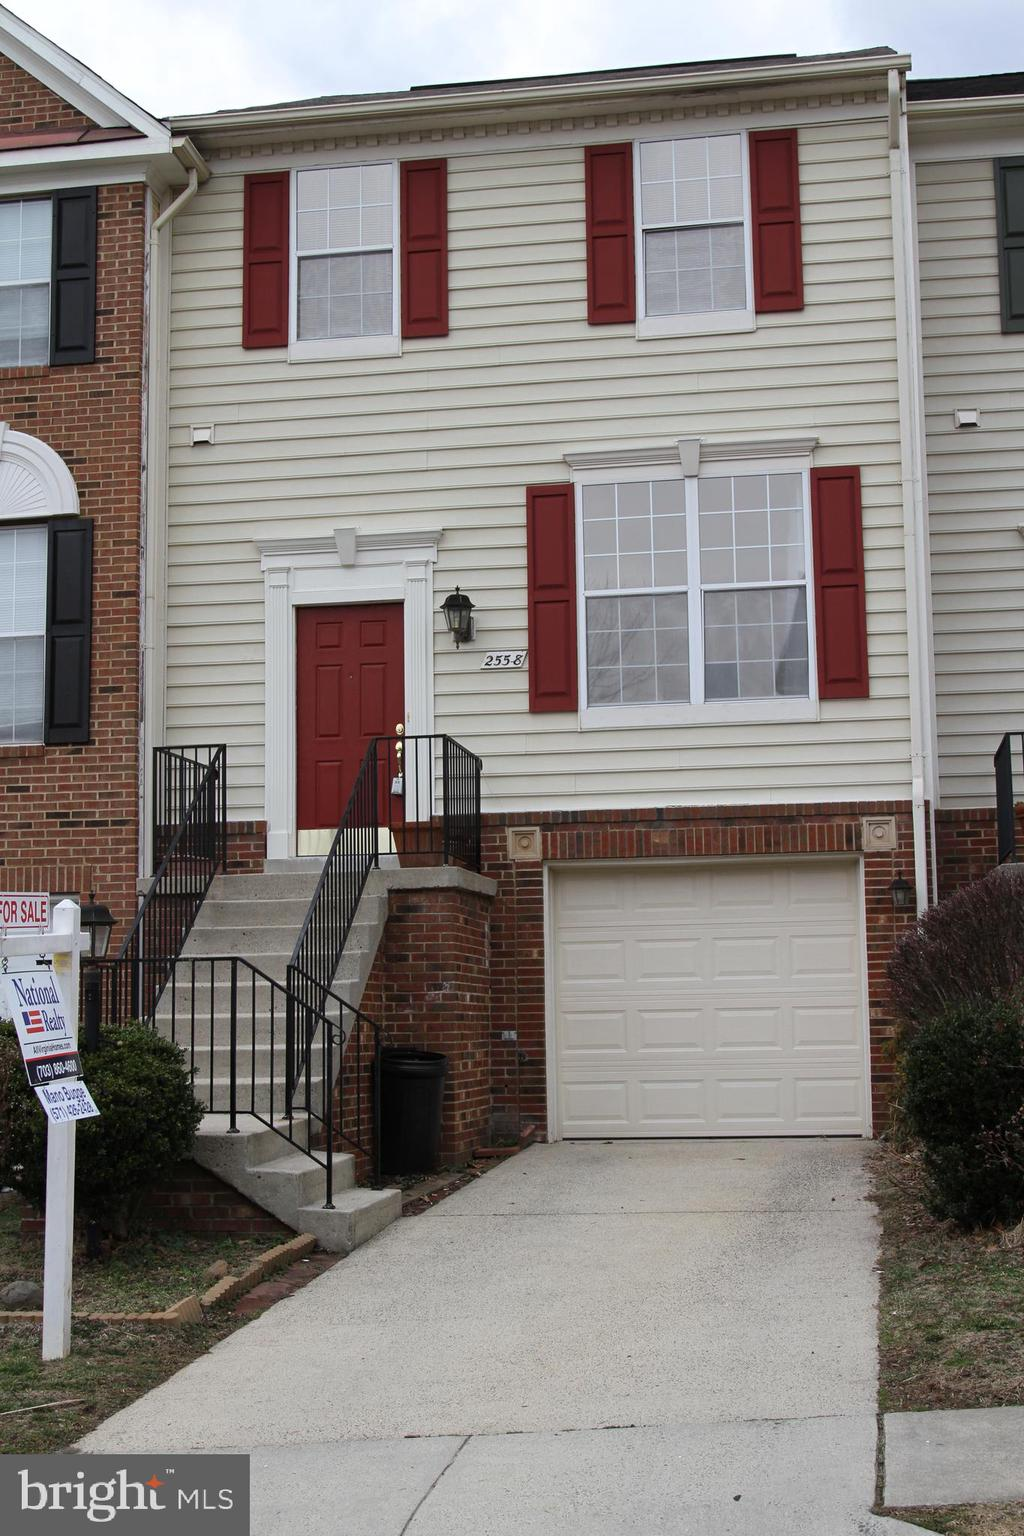 Stunning ready-to-move-in 3 level townhome in MCNAIR FARMS with the land area of 1837 sqft and total finished area of 2200 sqft. 3 bedrooms, 2 full baths and 2 half baths. Main Level and upper level - Hardwood floors, Lower Level - Carpet. Granite countertops in kitchen, high ceilings in the main level. Full-size deck beside the kitchen/ breakfast area on the main level and finished walkout patio in lower level with the fenced backyard. 1 Car Garage, concrete driveway for additional parking and one reserved parking spot. New Lennox A/C,  New Water heater, Stainless steel Refrigerator/ Stove-Range/Microwave/Dishwasher, Ceiling Fans/Washer and Dryer. Very close to Route 28, 267, Dulles Airport and future Herndon-Monroe Silverline metro station.Dulles Toll Rd - Take exit 10 to VA-657 toward Herndon/ Chantilly, Use the left 2 lanes to turn left onto VA-228 S/VA-657, Turn right onto McNair Farms Dr, Turn right onto James Maury Dr, Destination will be on the left.